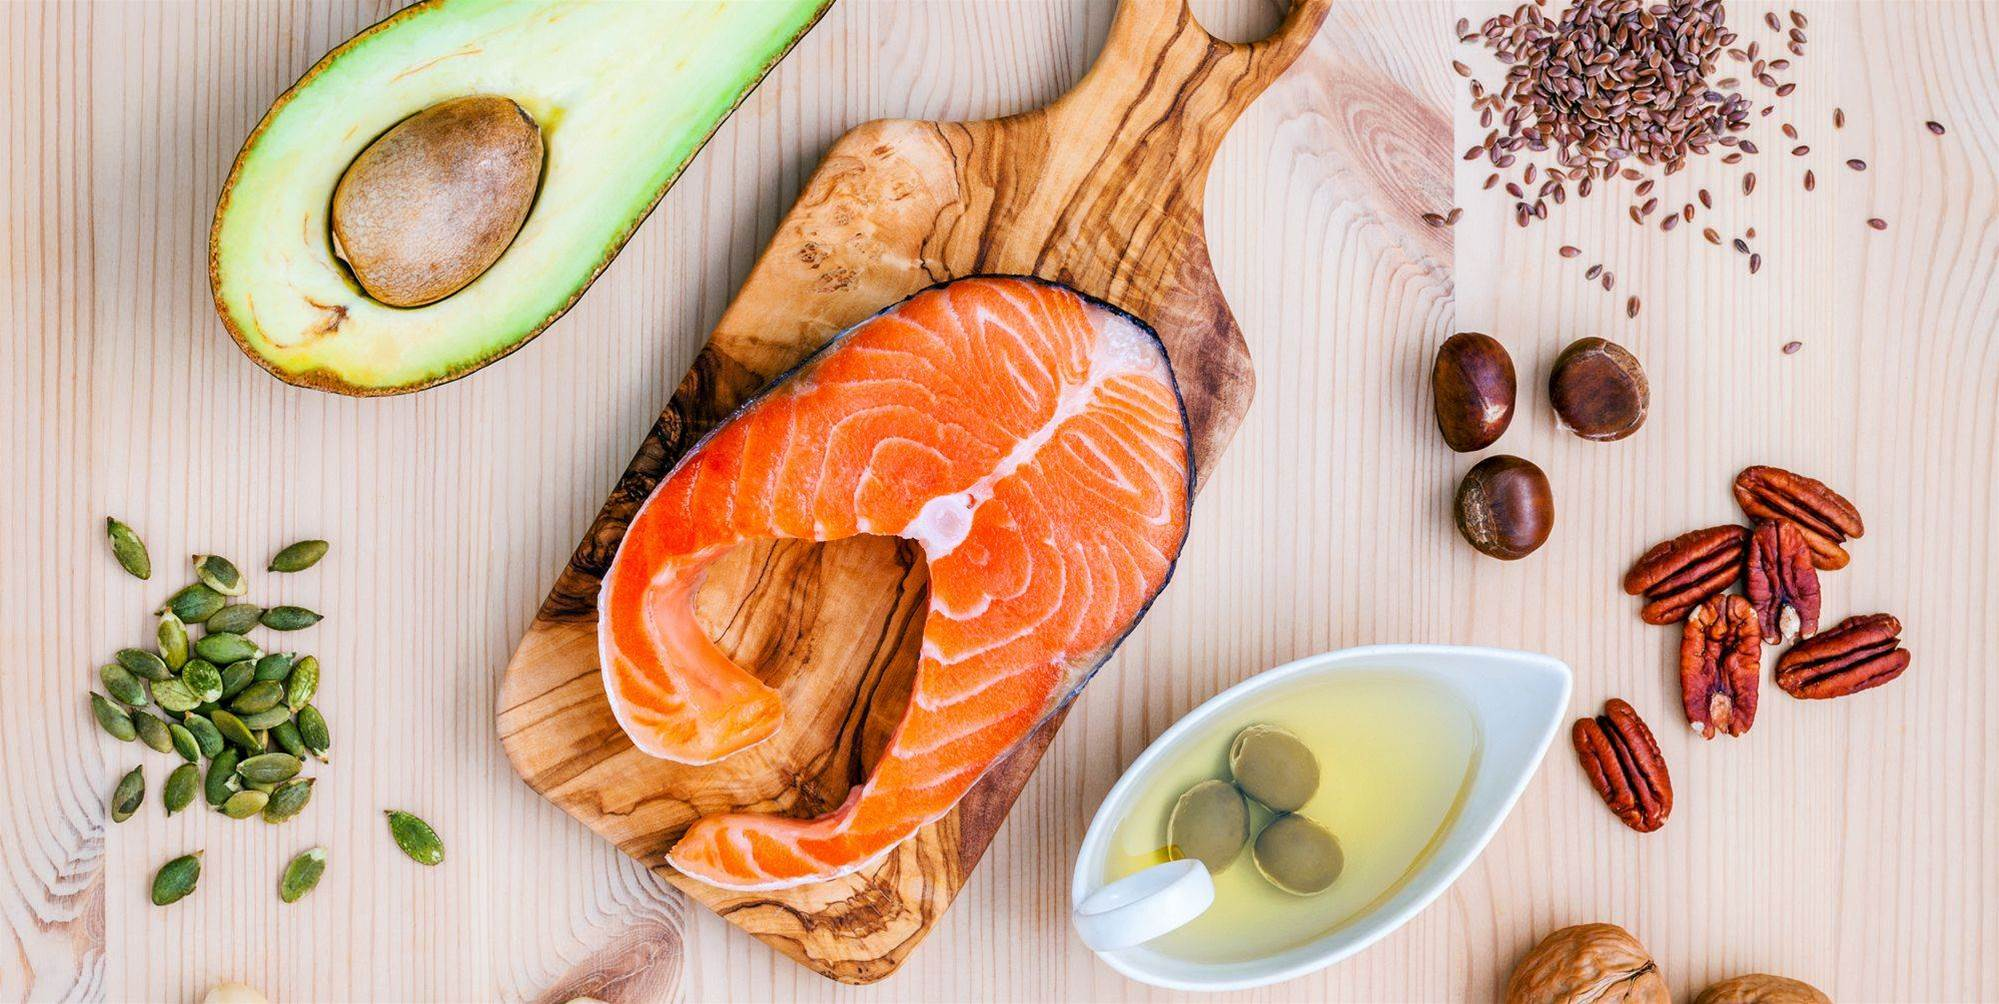 Keto Diet May Raise Type 2 Diabetes Risk (In Mice, at Least)